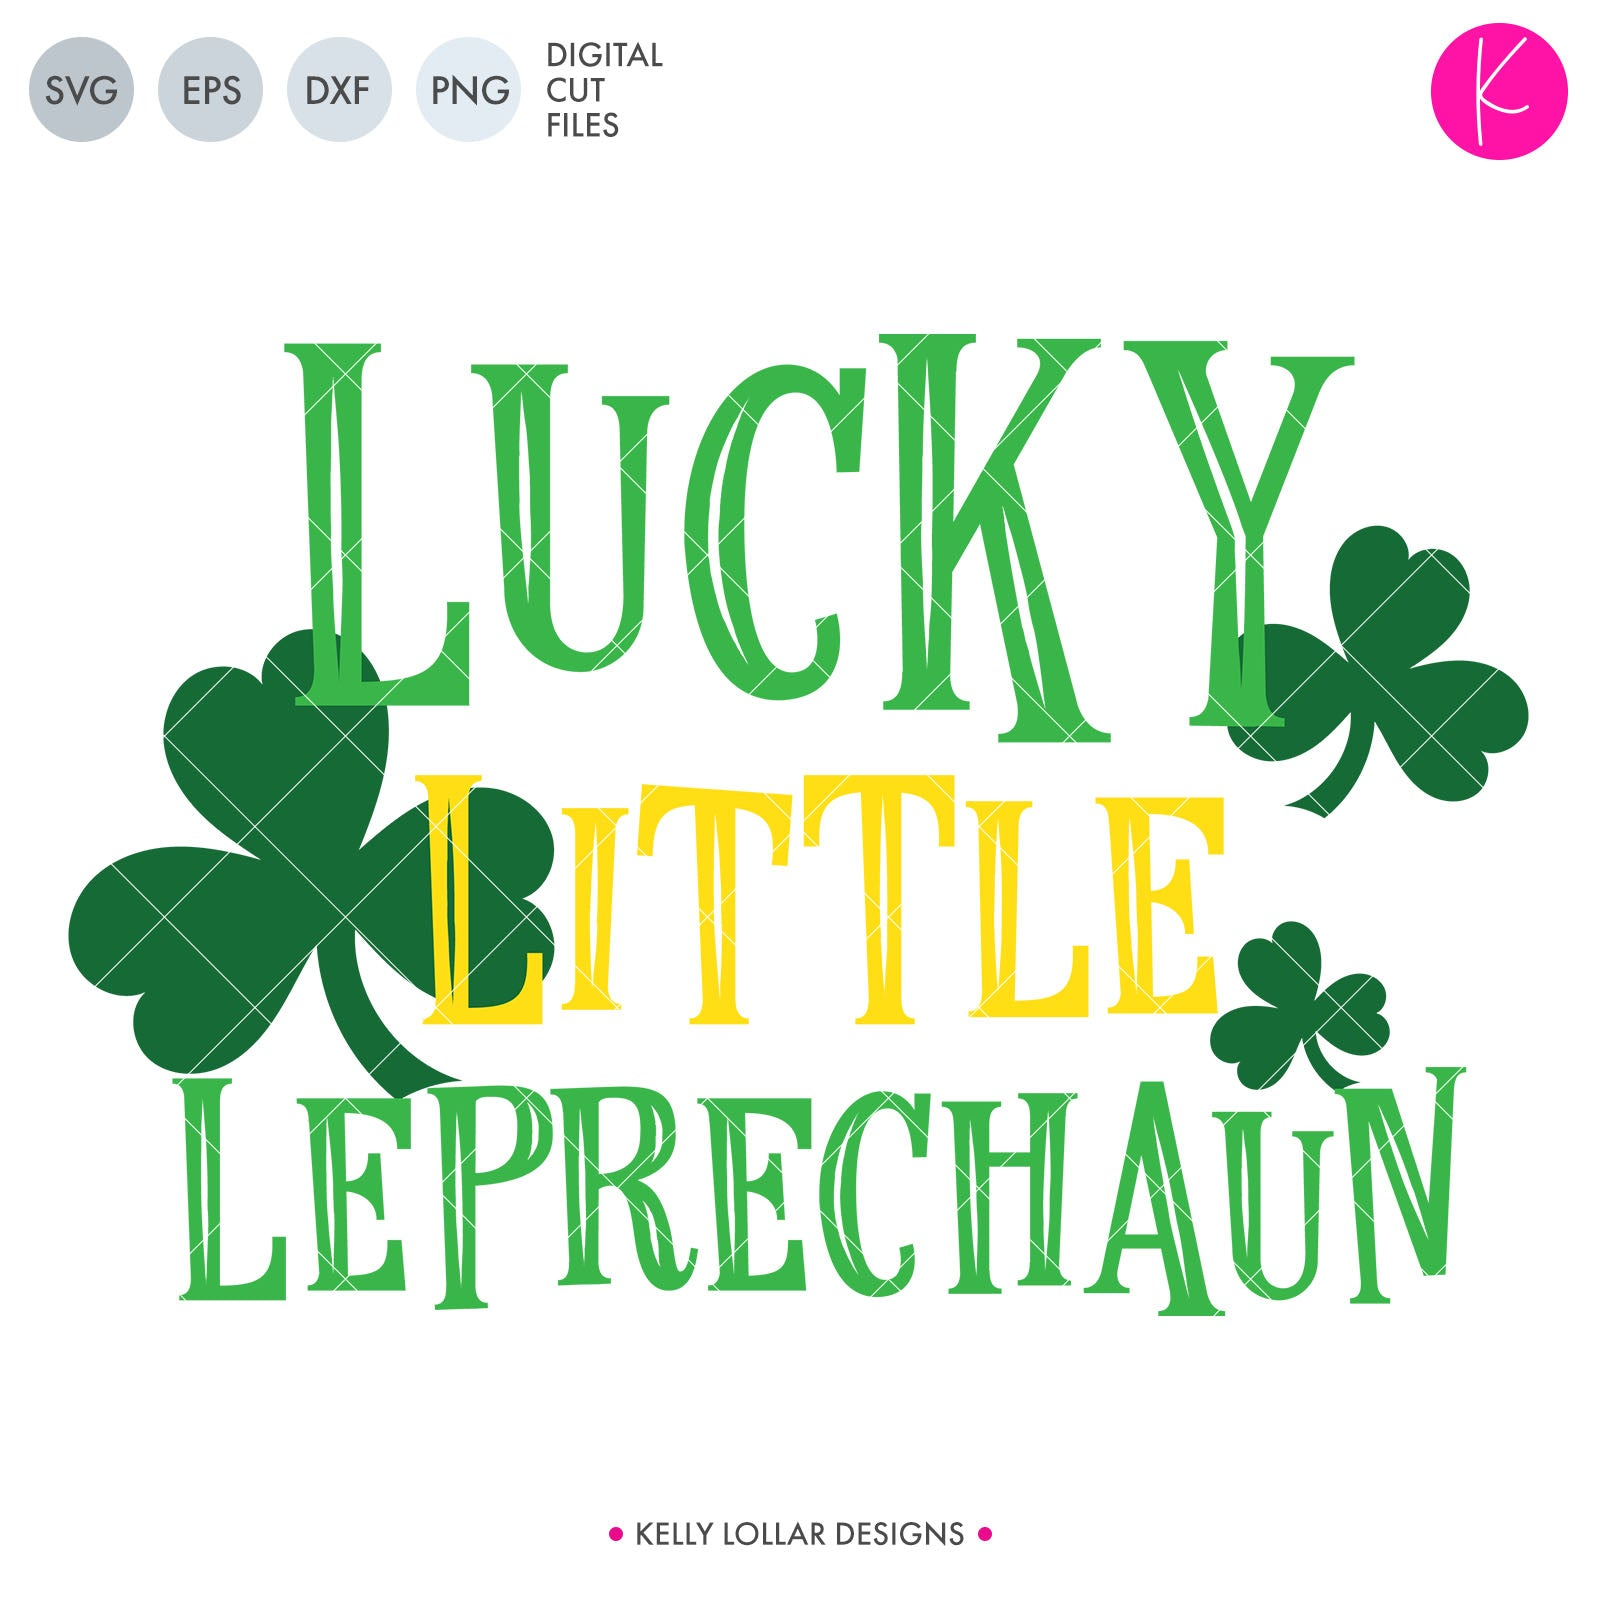 Seasonal Svg Dxf Eps Png Cut Files Kelly Lollar Designs Tagged Leprechaun